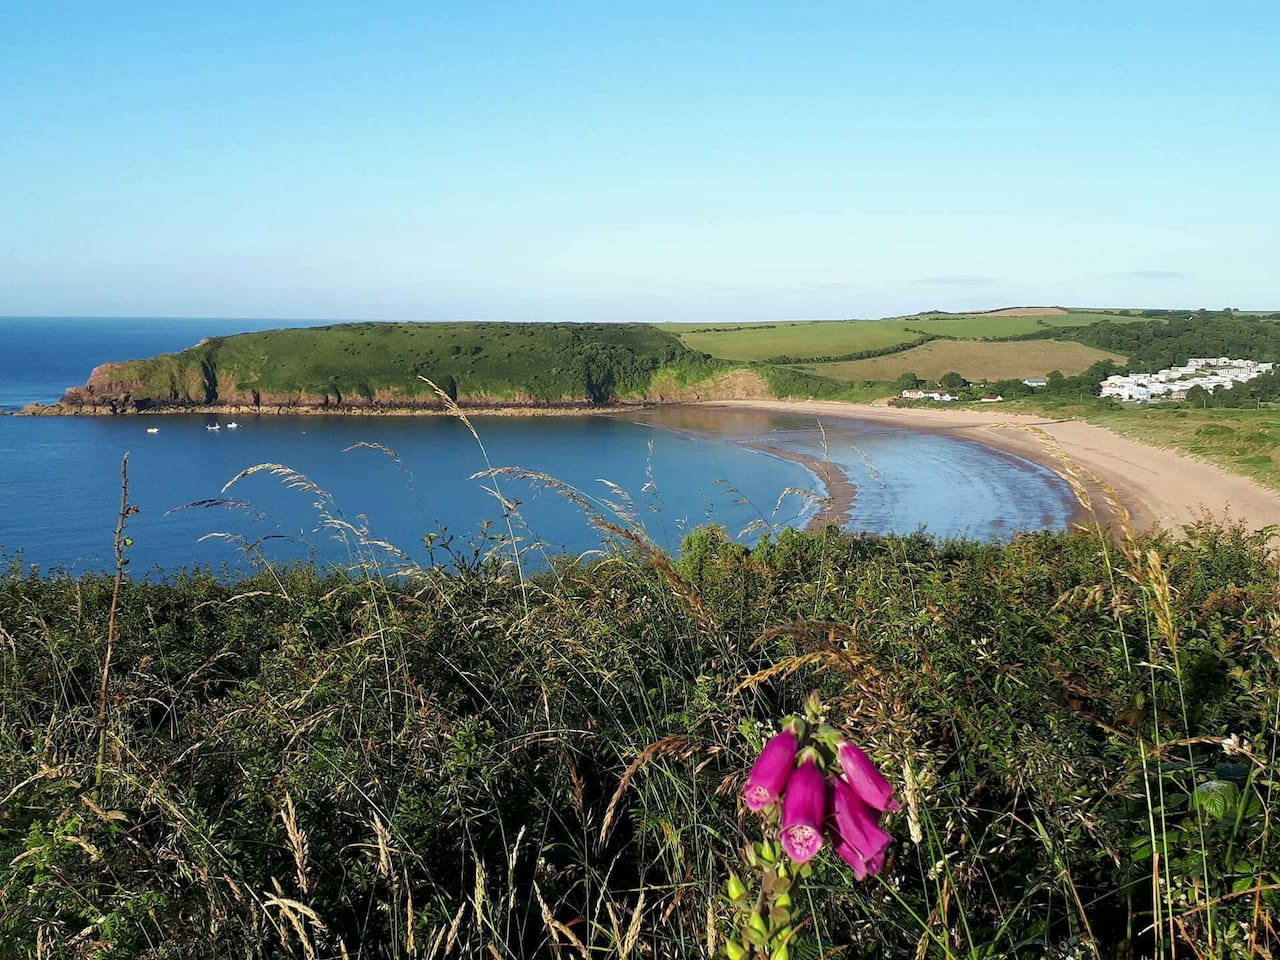 View of beautiful Freshwater East beach and holiday village from the Pembrokeshire Coastal Path